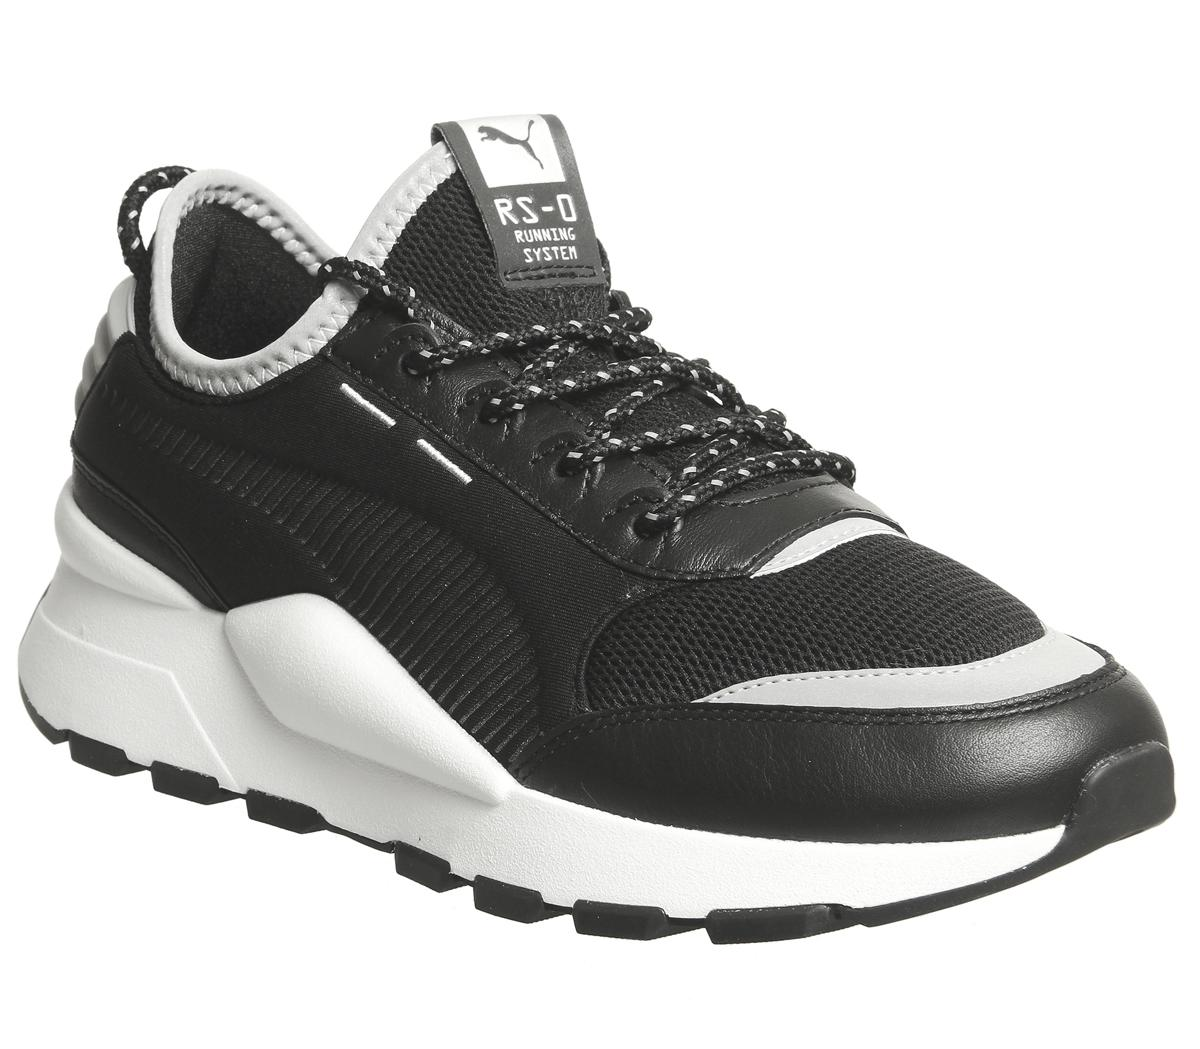 Rs-0 Optic Trainers